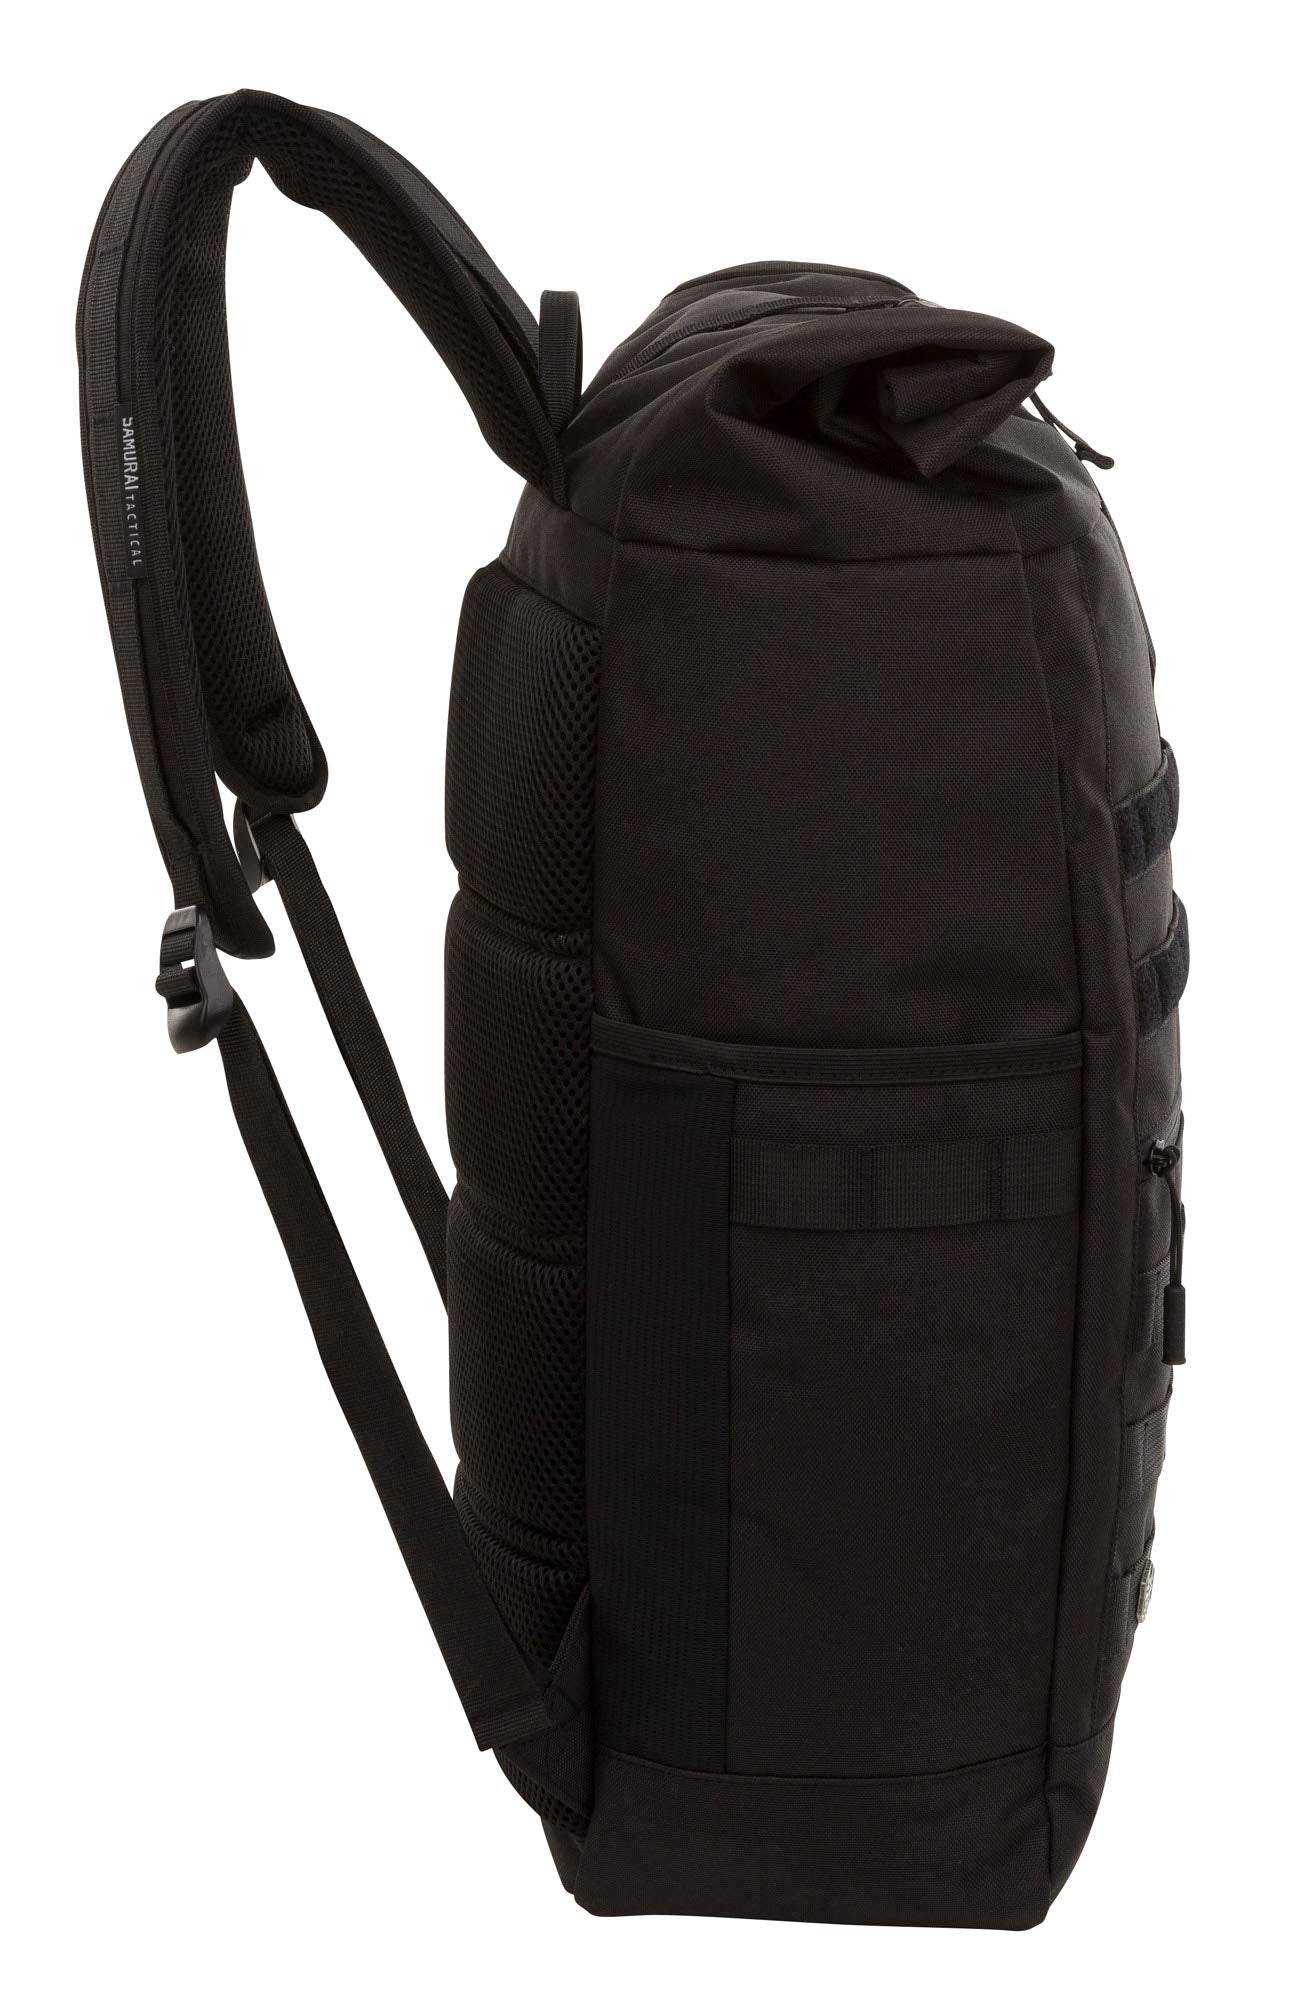 Ronin Day Backpack